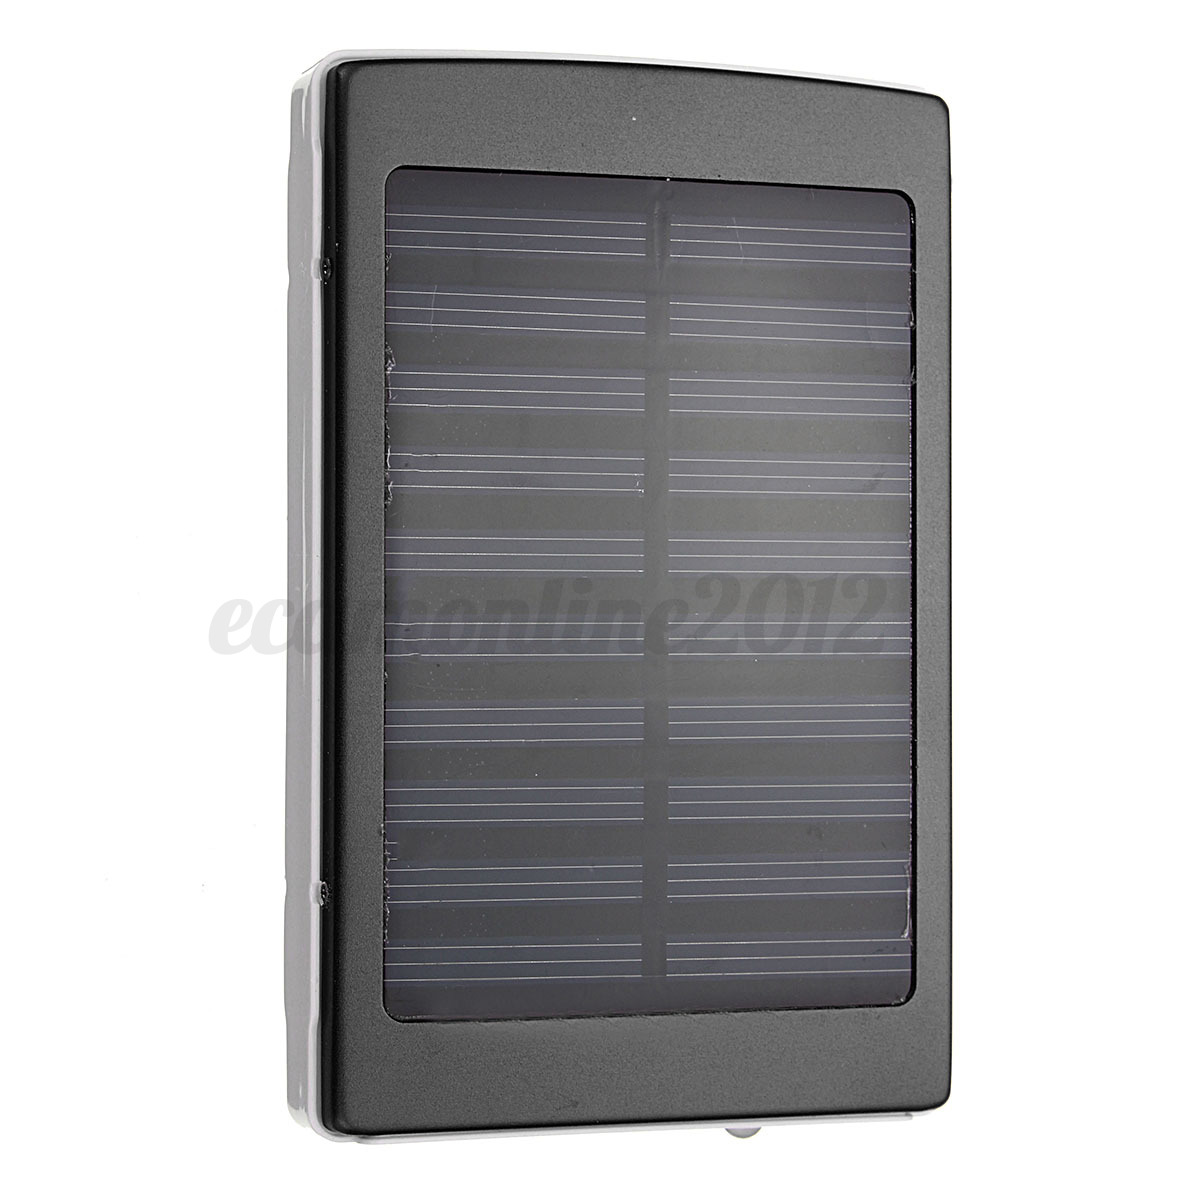 50000mAh-Solar-Battery-Charger-Power-Bank-For-iPhone-iPad-Tablets-amp-Smart-Phones